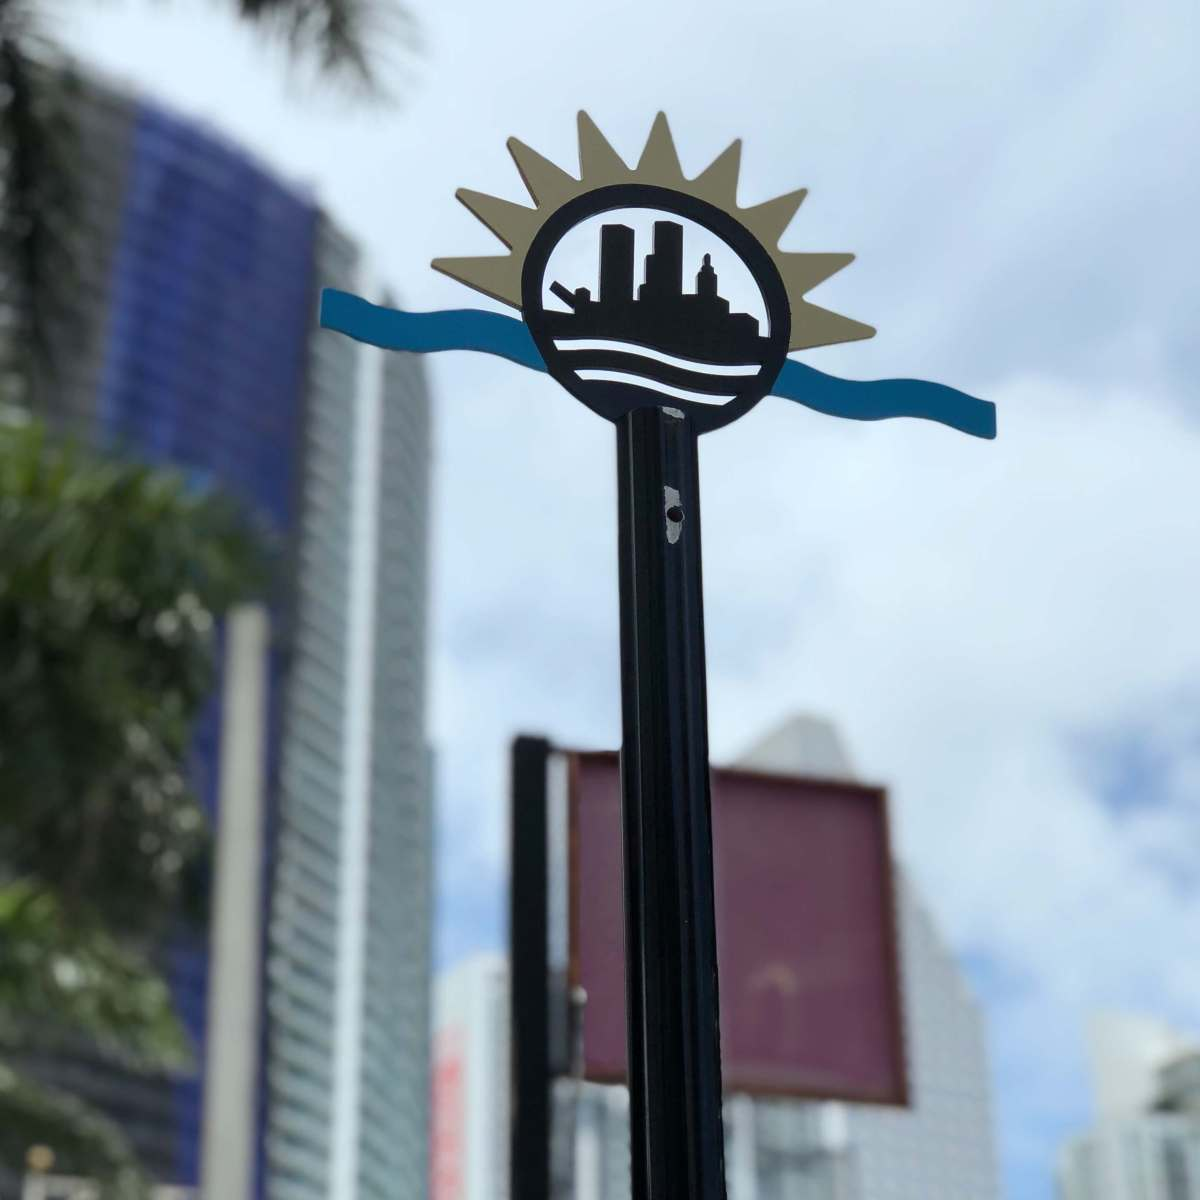 Sign indicating the riverwalk in downtown Miami